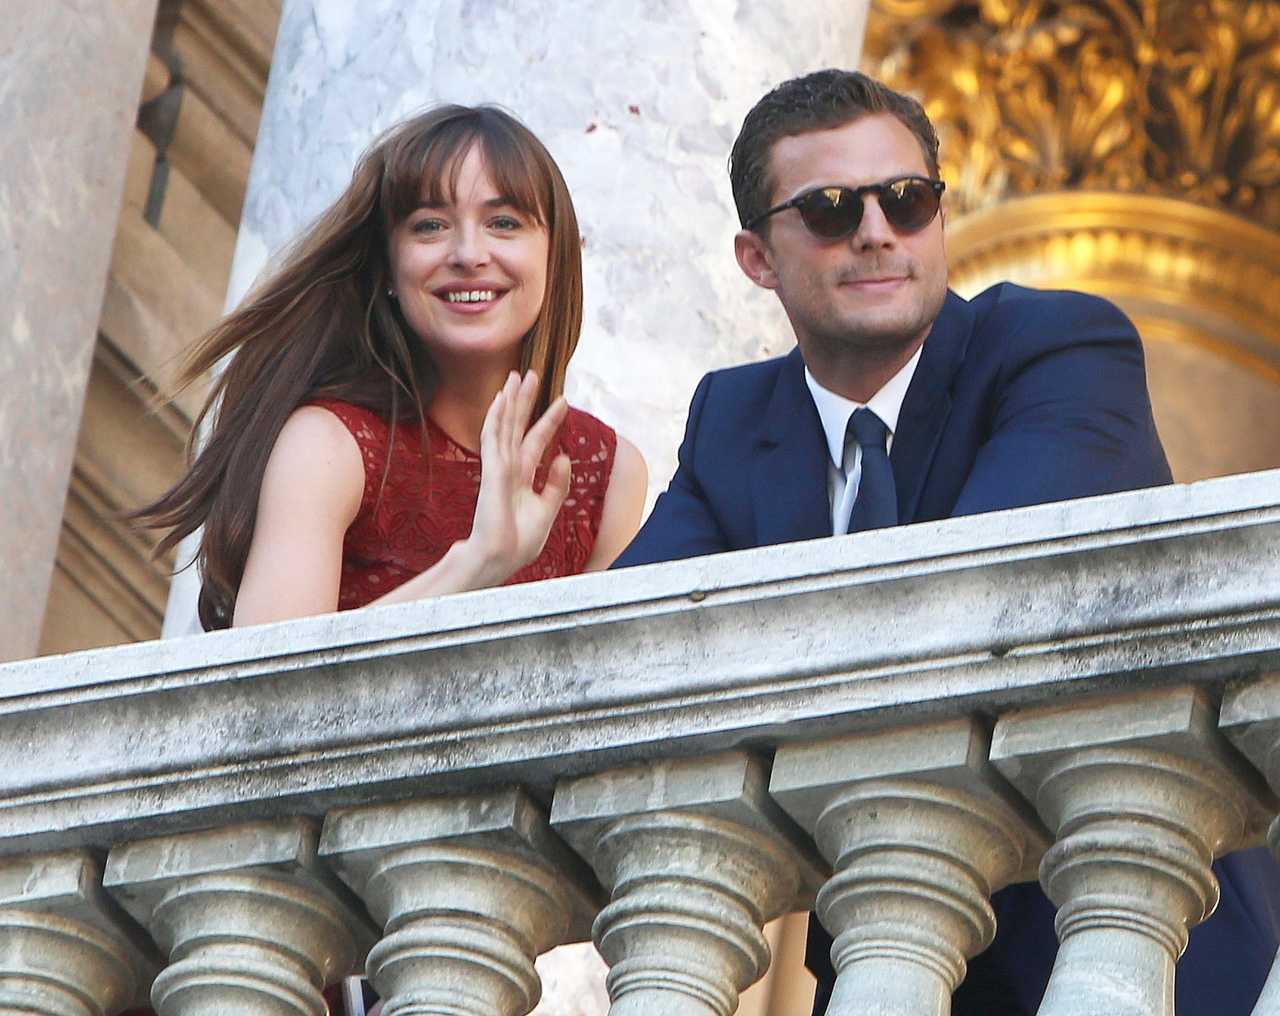 Filming on 'Fifty Shades Darker' takes place at Opera Garnier in ParisFeaturing: Dakota Johnson, Jamie DornanWhere: Paris, FranceWhen: 18 Jul 2016Credit: WENN.com**Not available for publication in France, Belgium, Spain, Italy**